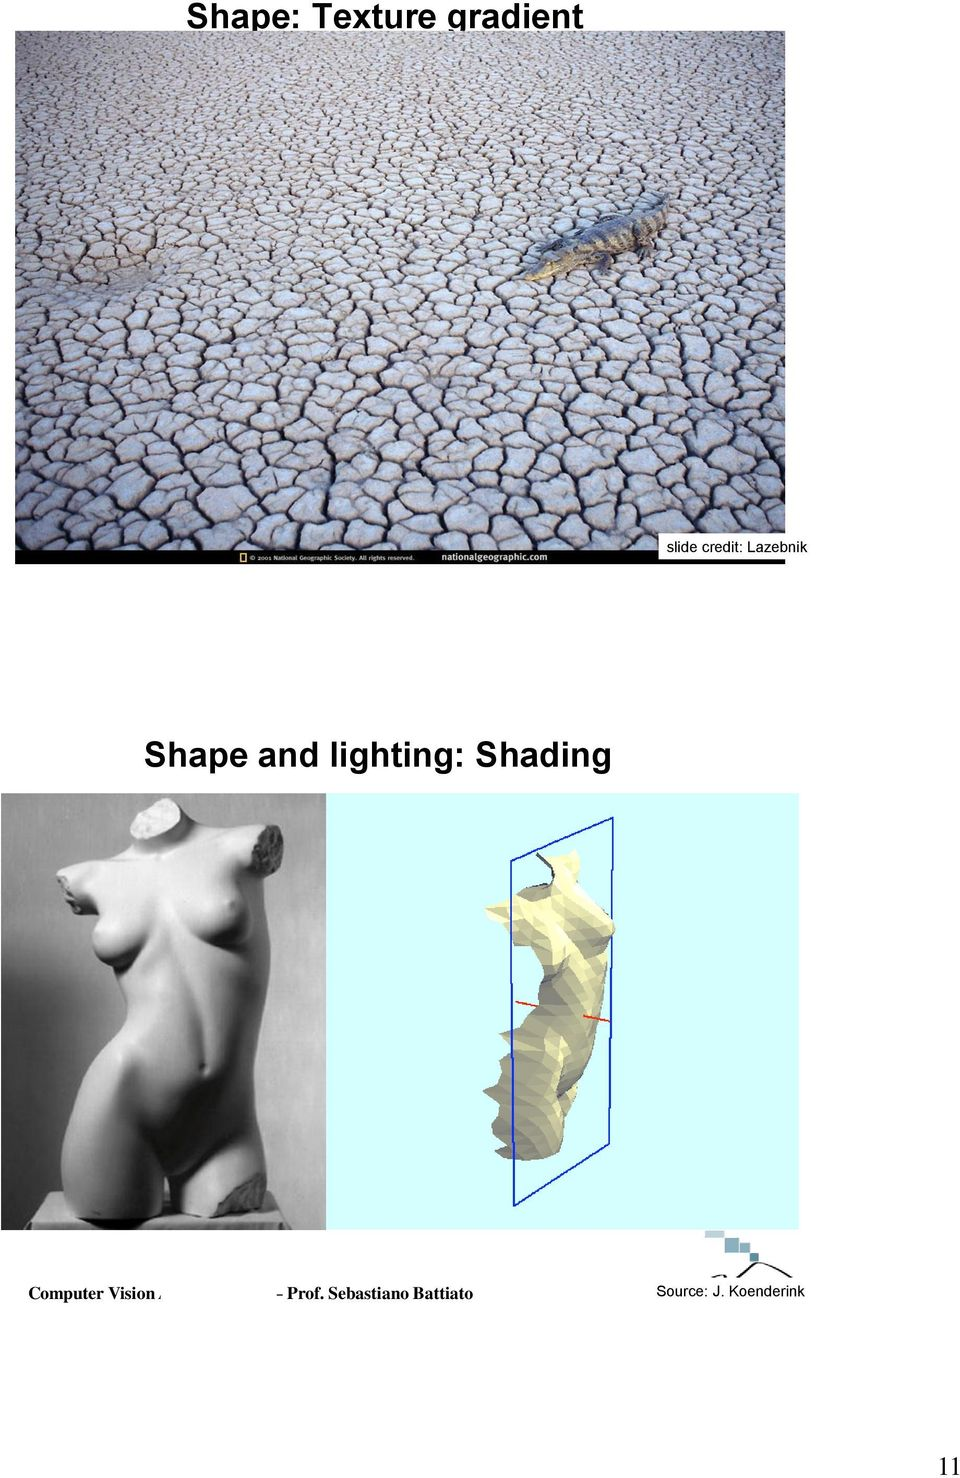 Shape and lighting: